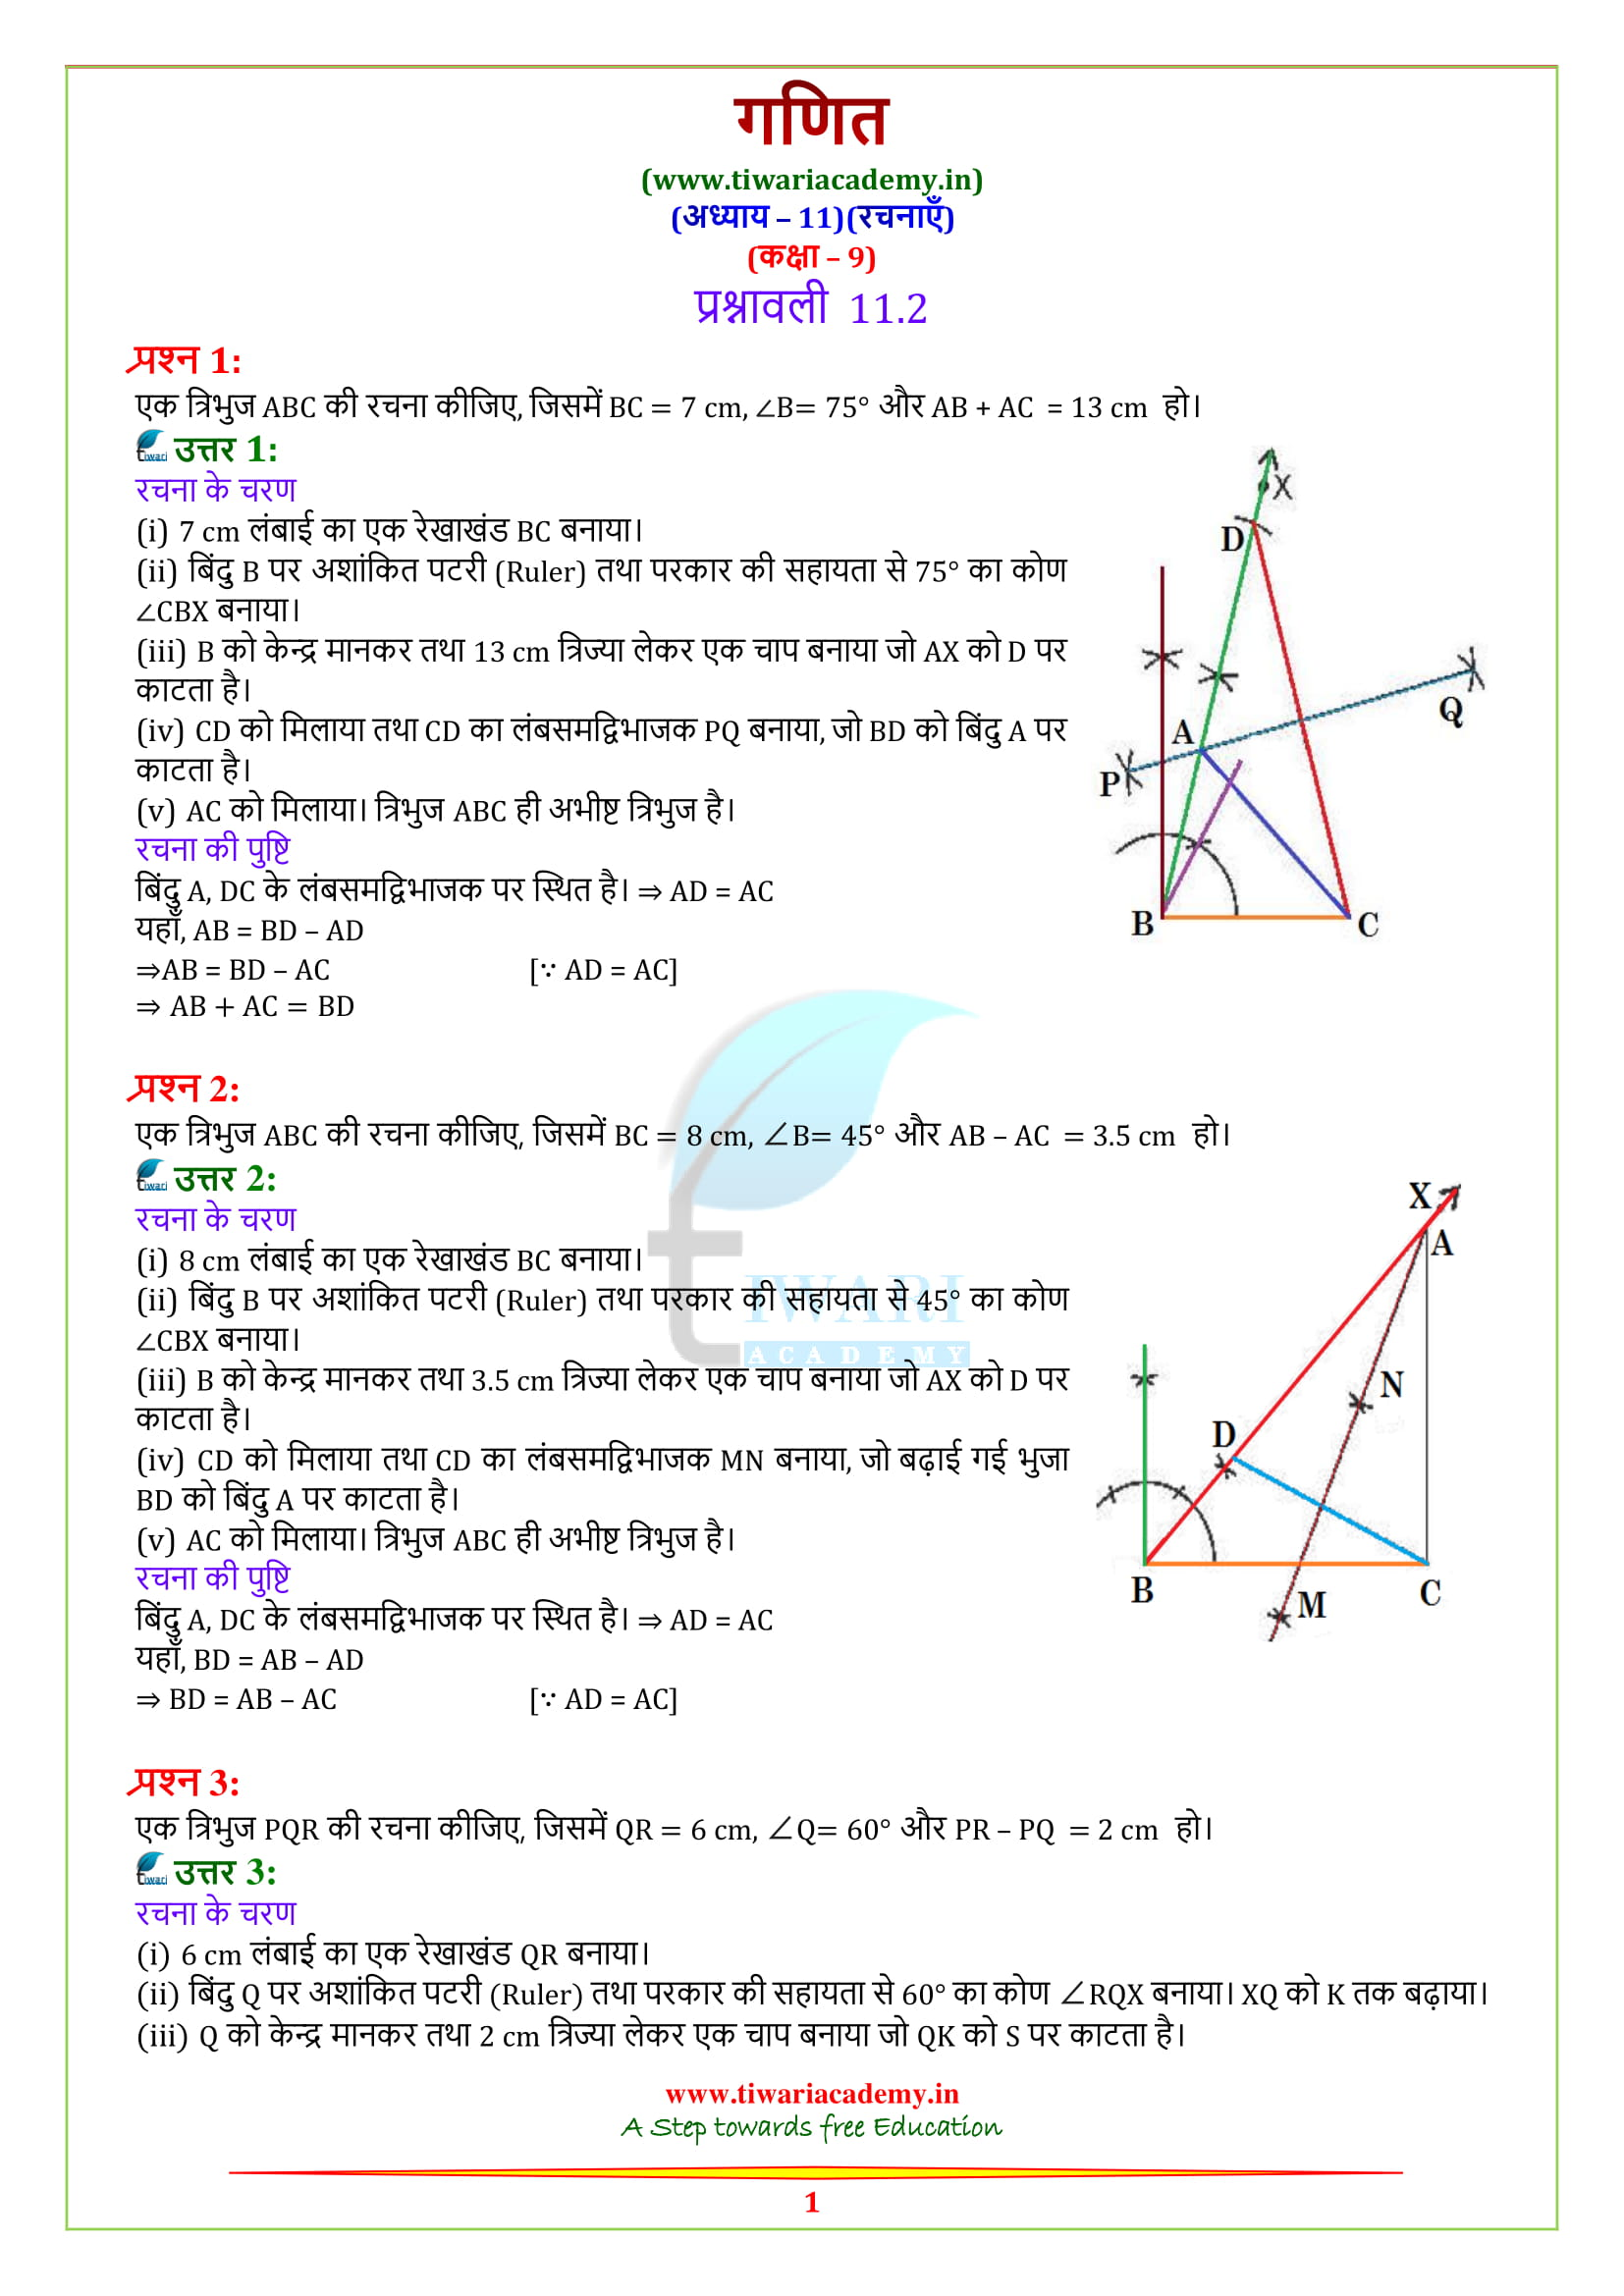 9 Maths exercise 11.2 solutions in hindi